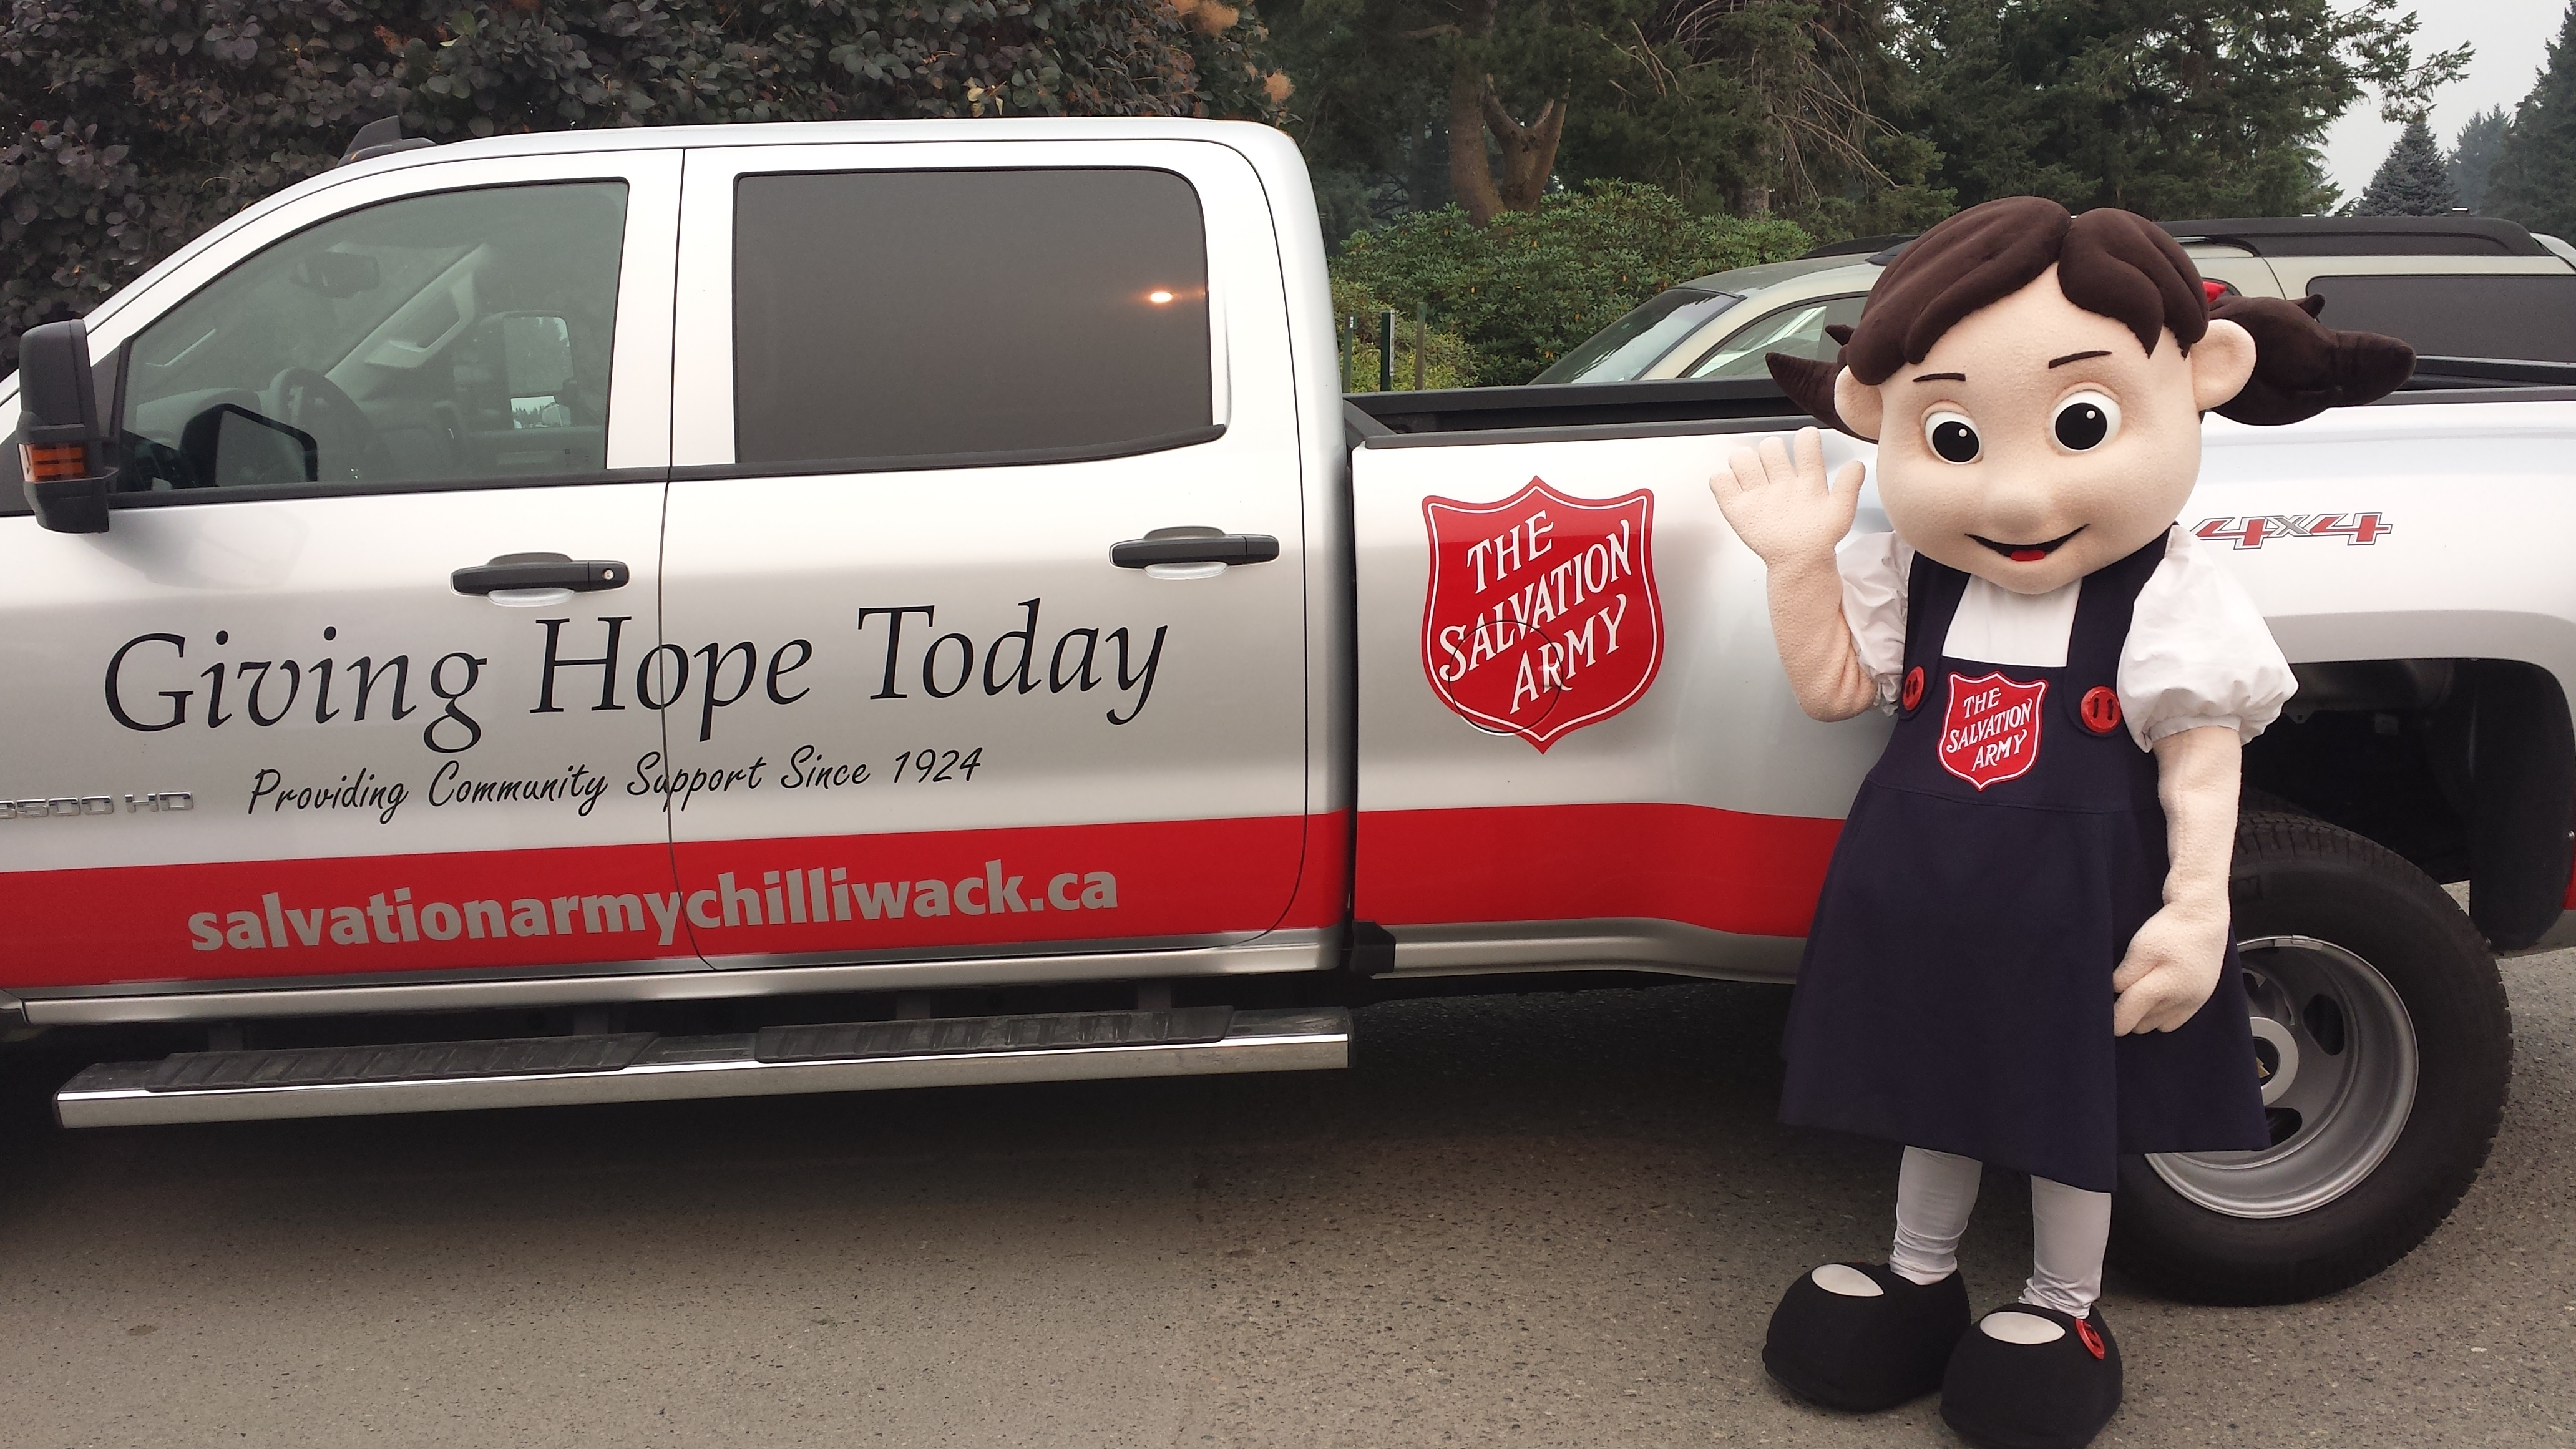 Salvation Army Chilliwack Giving Hope Today